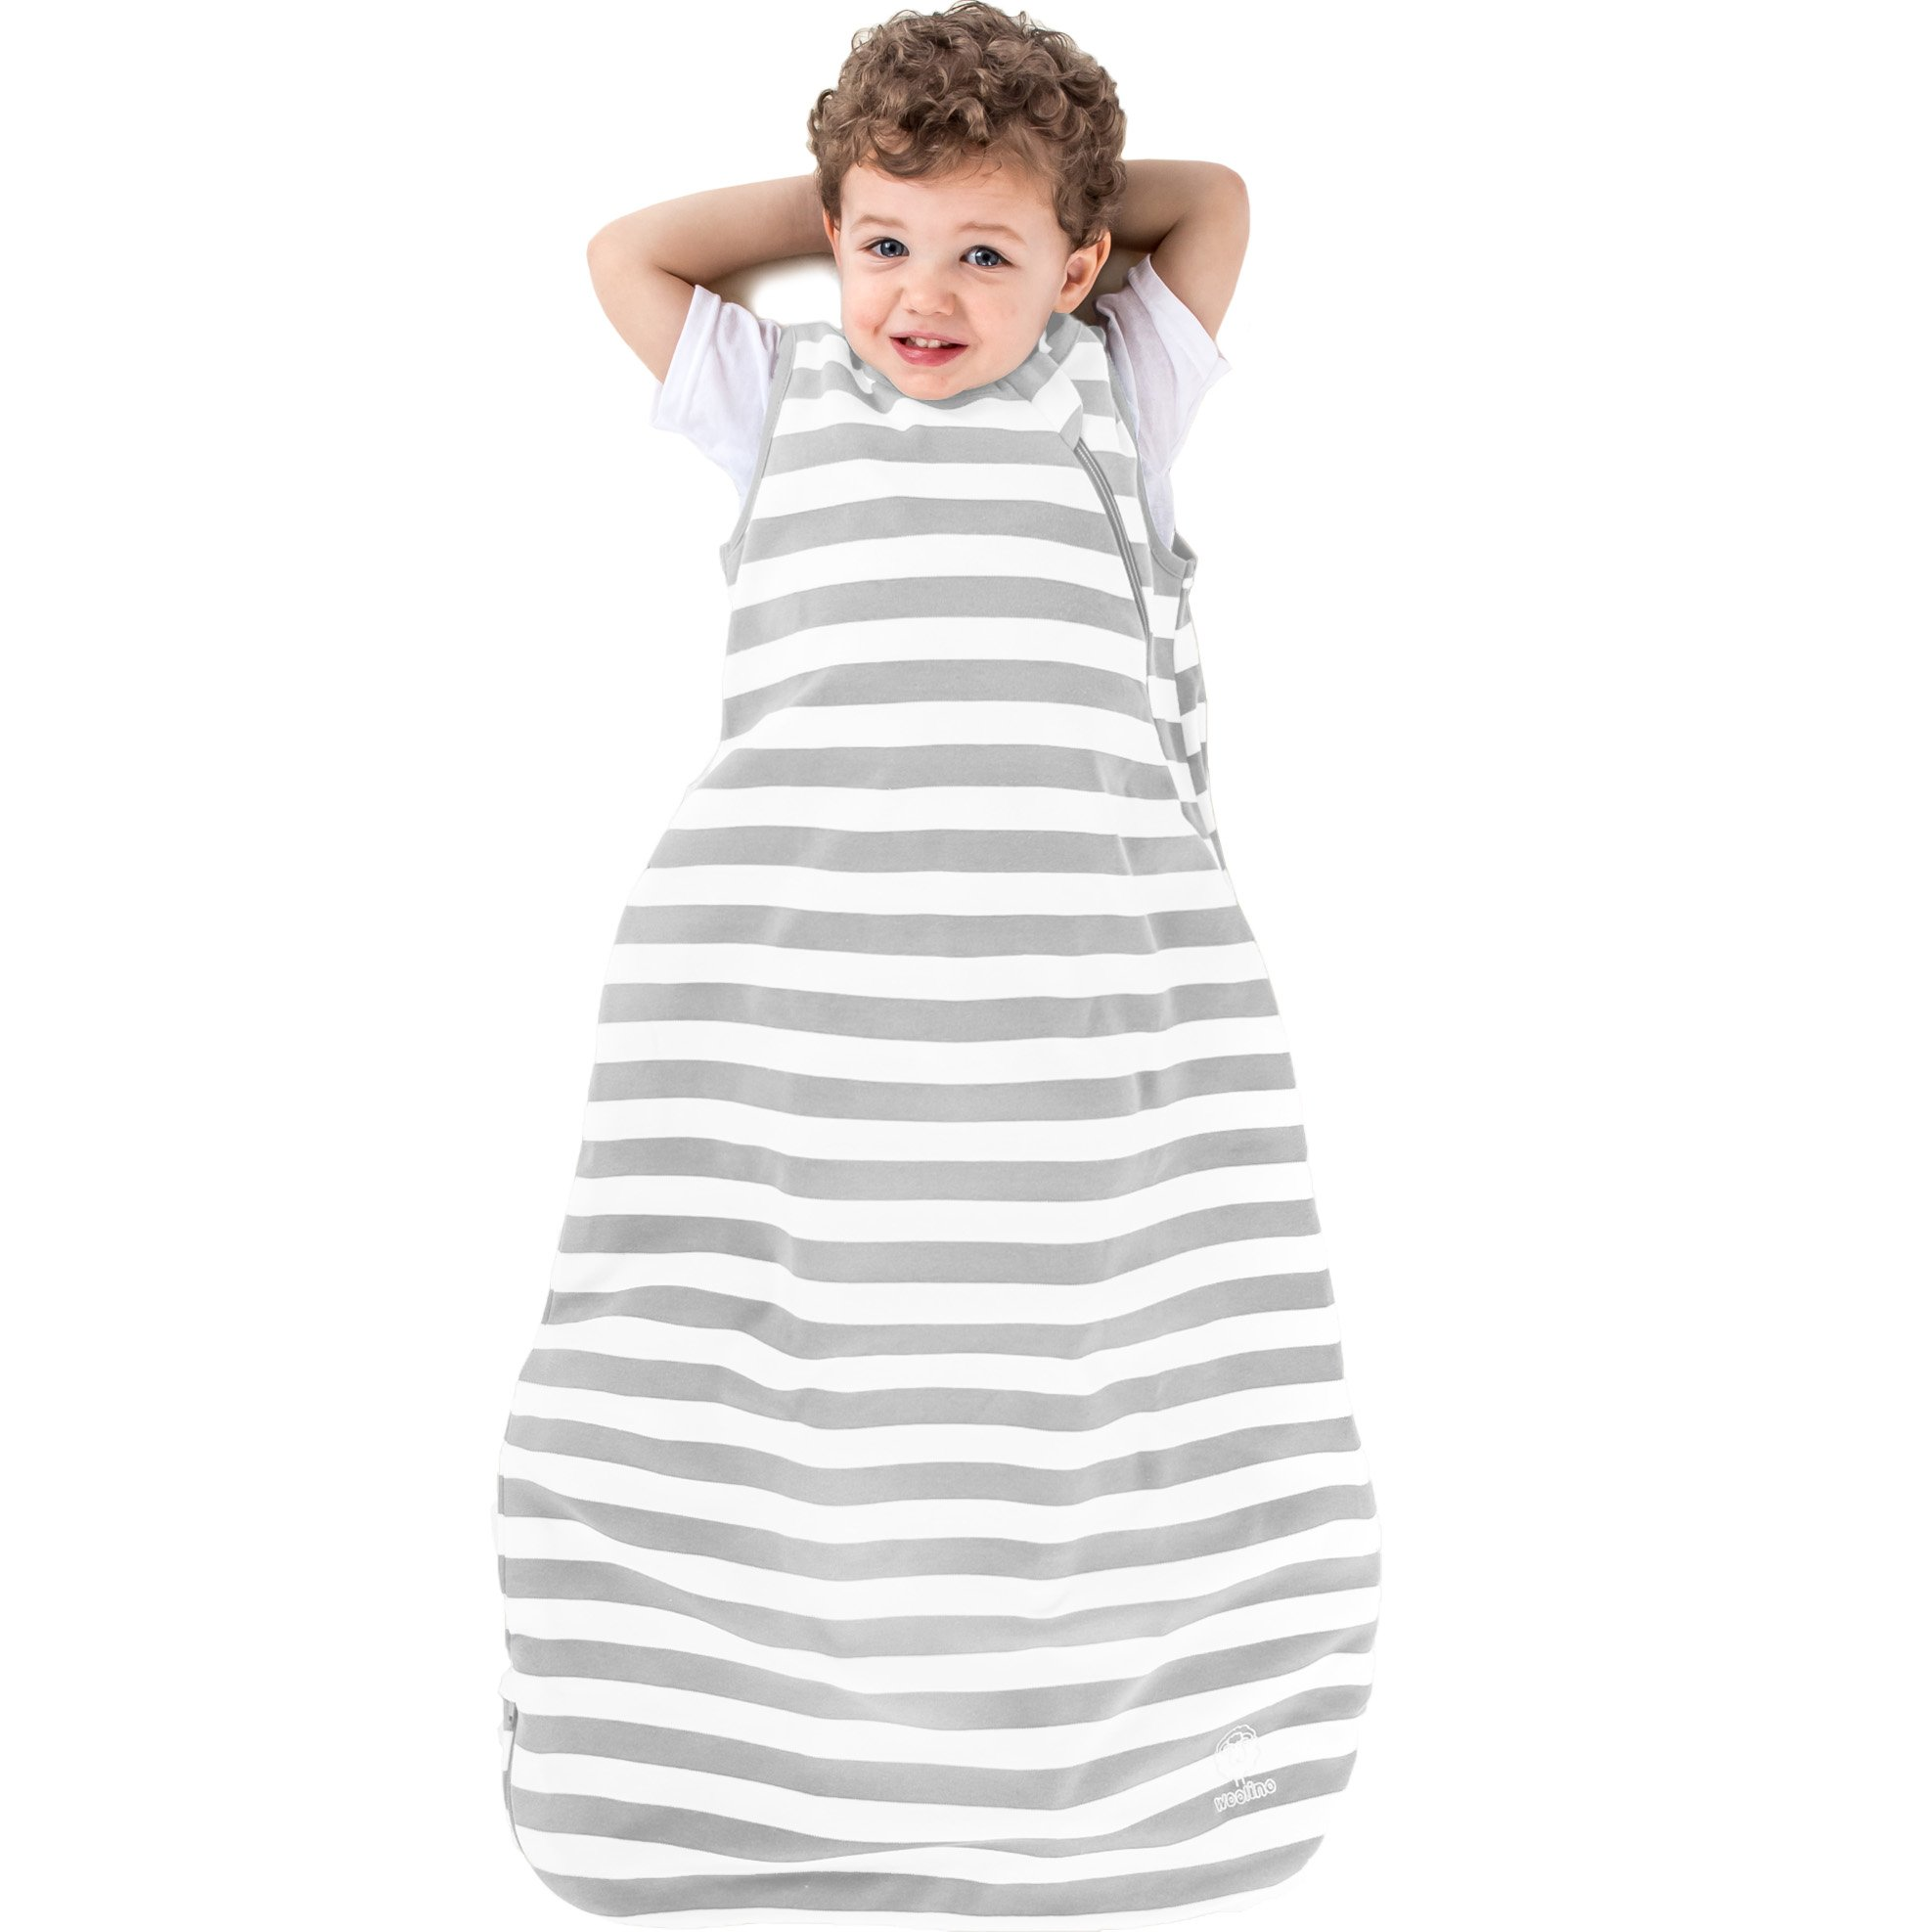 Woolino Organic Cotton Toddler Sleep Bag or Sack - Toddler Sleeping Bag - 18-36 Mo, Silver by Woolino